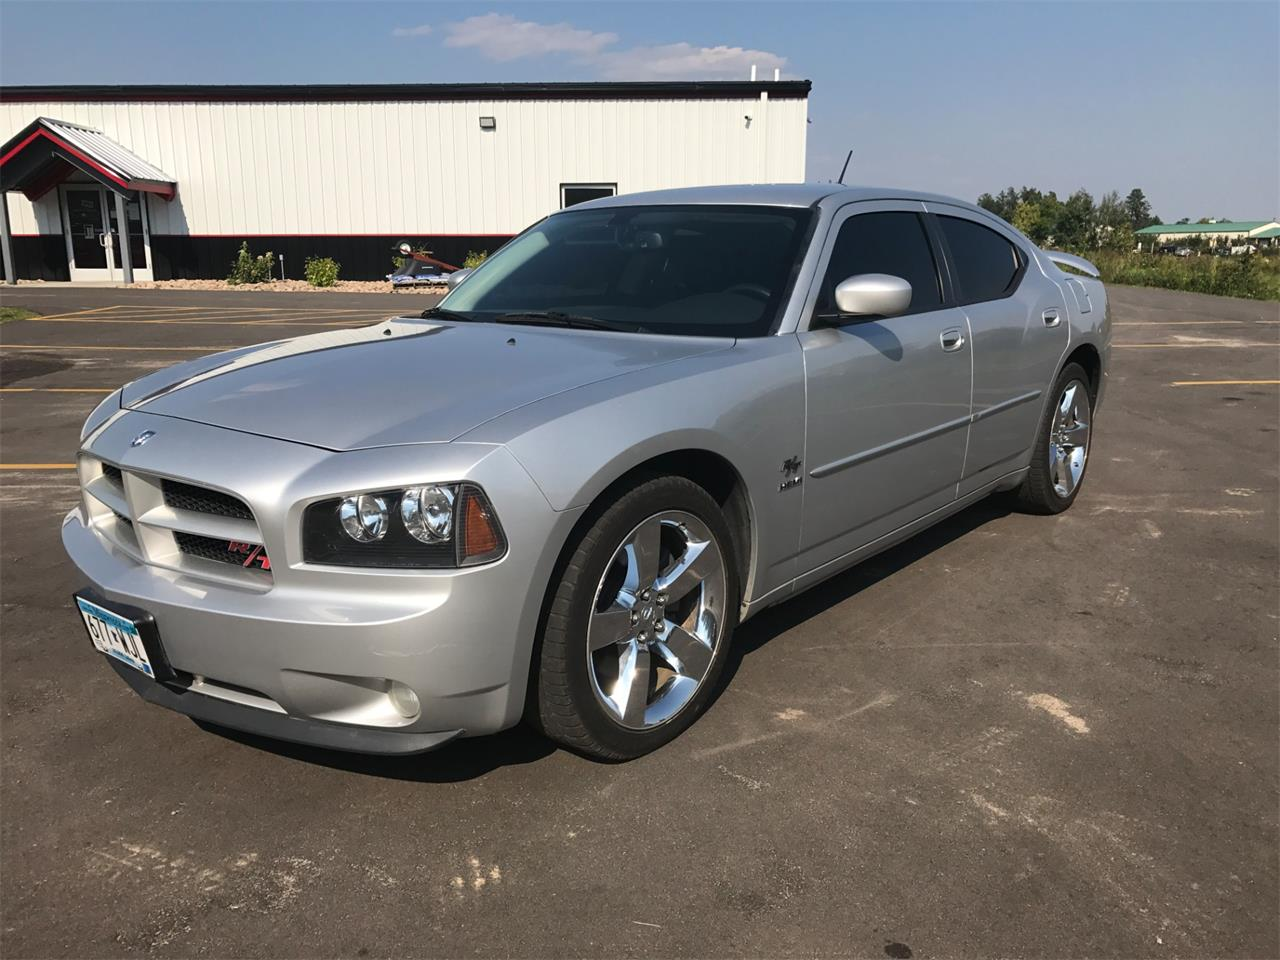 2008 Dodge Charger for Sale | ClassicCars.com | CC-1016825